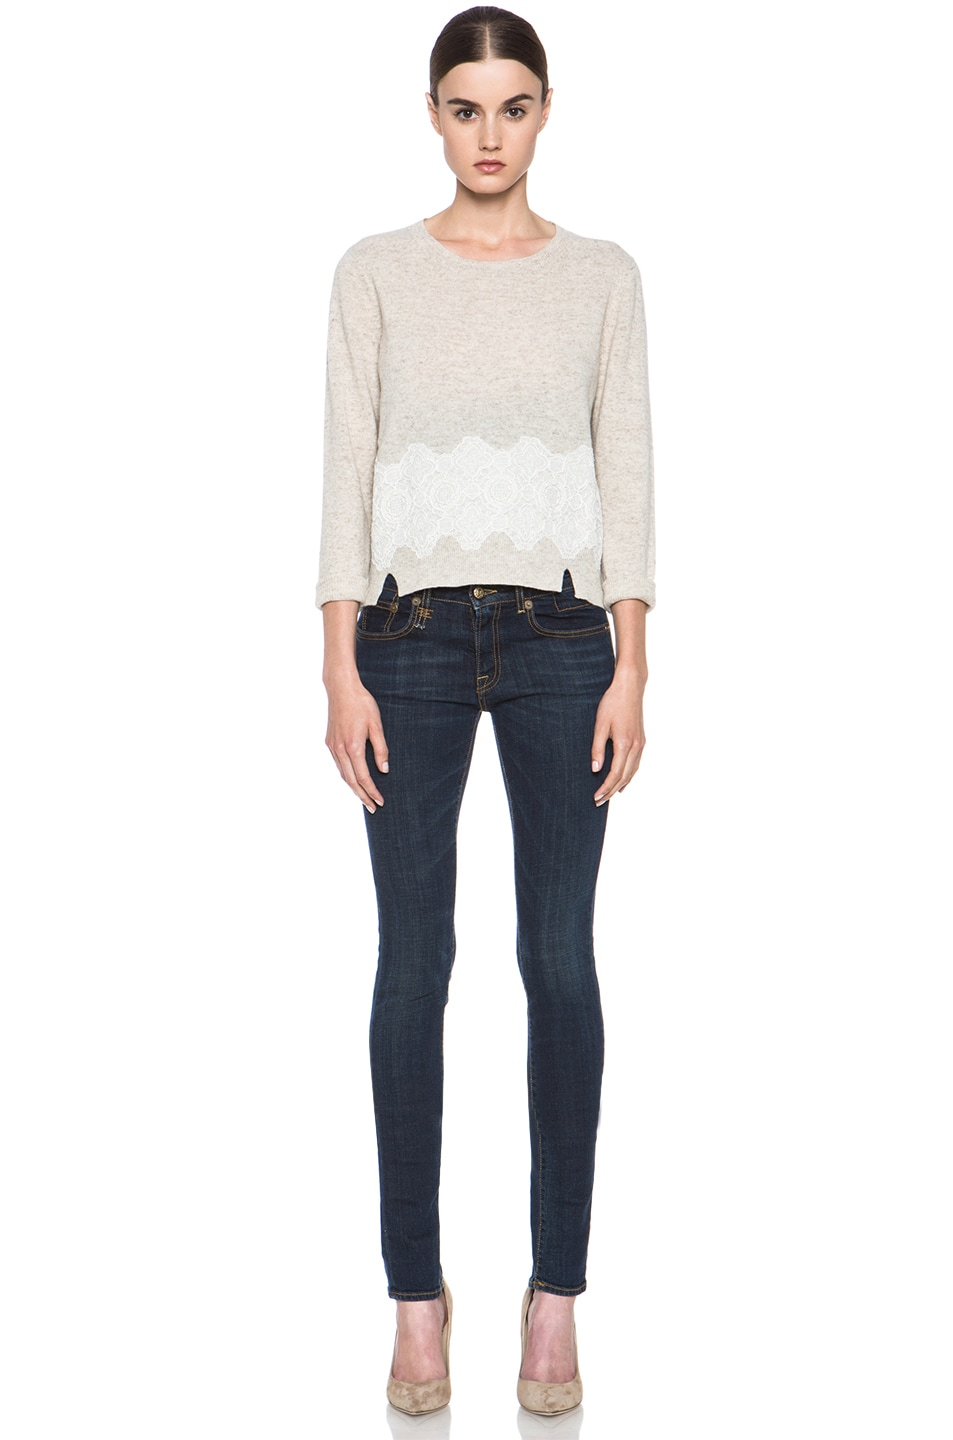 Image 5 of Girl. by Band of Outsiders Merino Wool Lace Pullover in Oatmeal